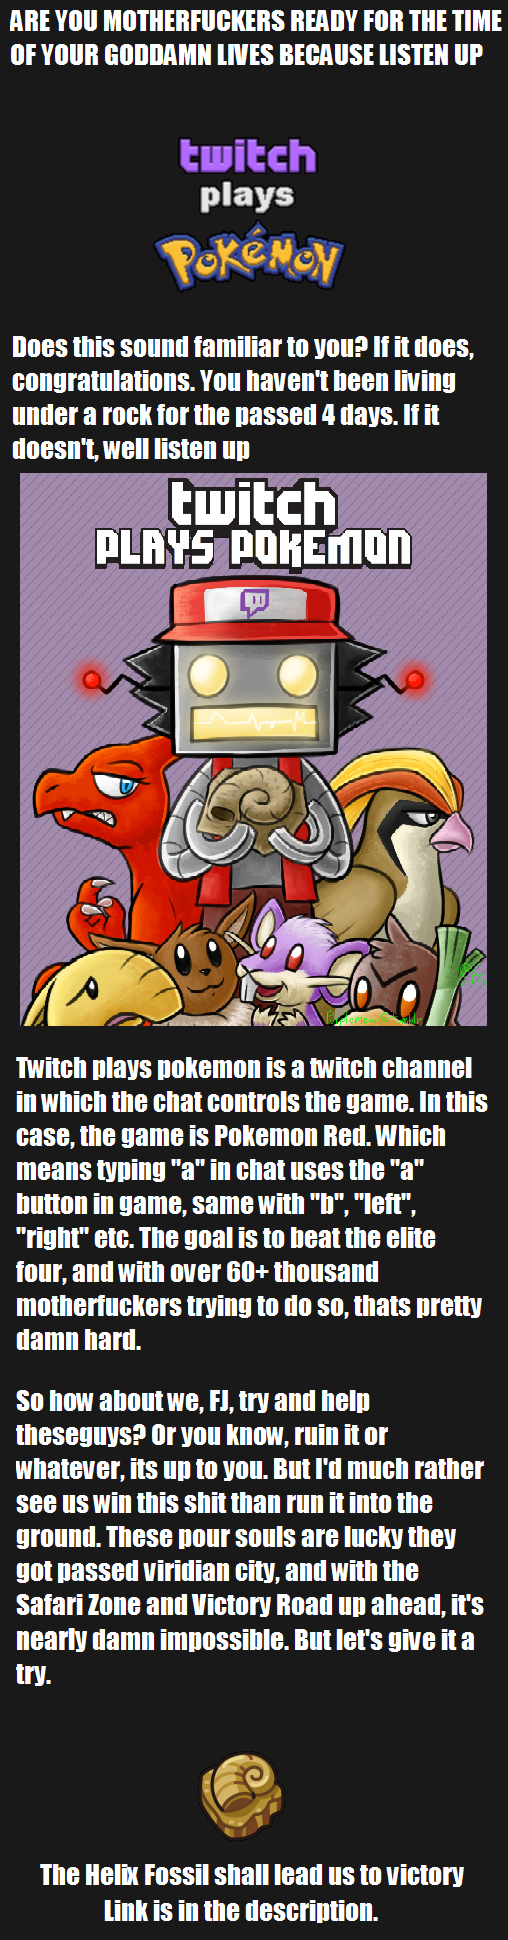 Twitch & Funnyjunk plays Pokemon. twitch.tv/twitchplayspokemon for the stream reddit.com/r/twitchplayspokemon for updates and . RITE VIII] ITEM Hill THE TIME en